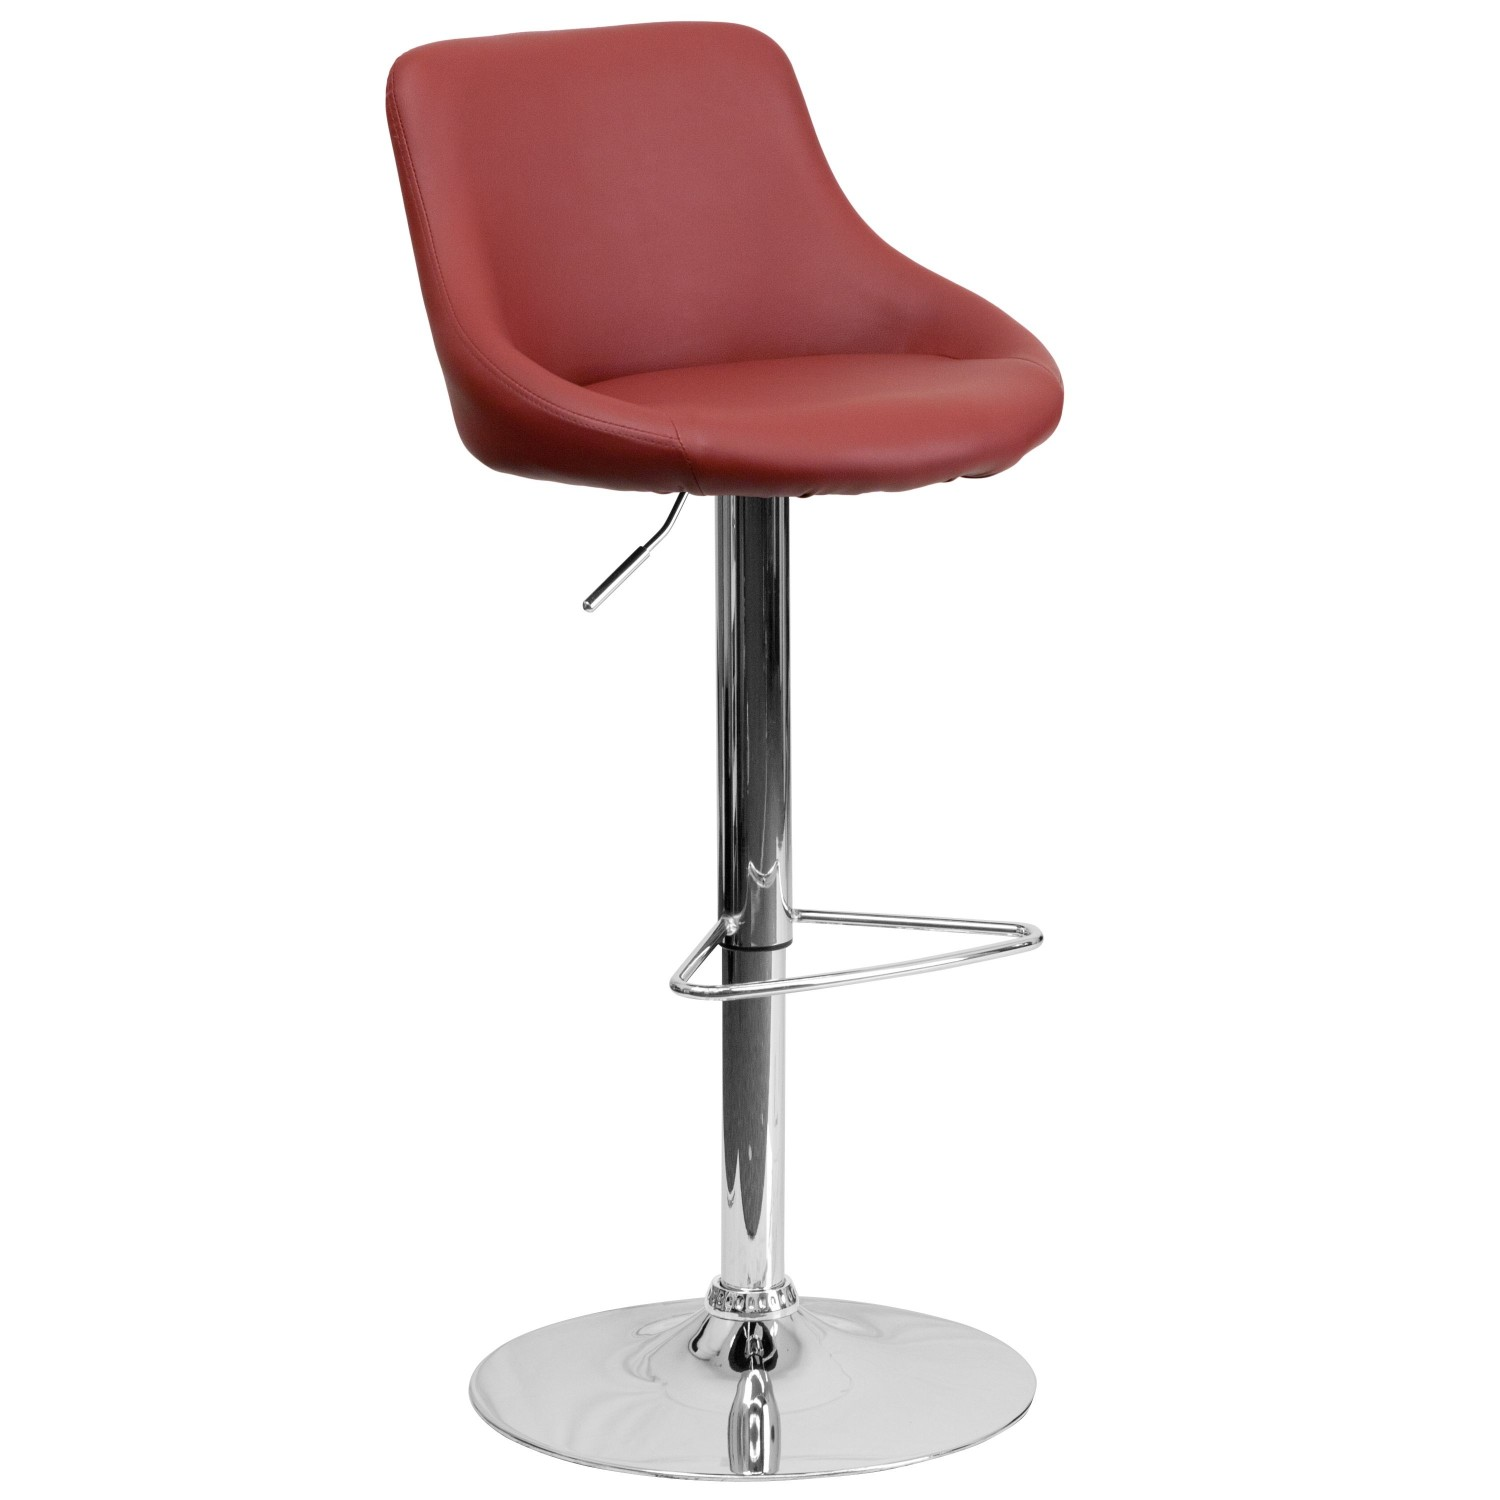 Flash Furniture CH-82028-MOD-BURG-GG Contemporary Burgundy Vinyl Bucket Seat Adjustable Height Bar Stool